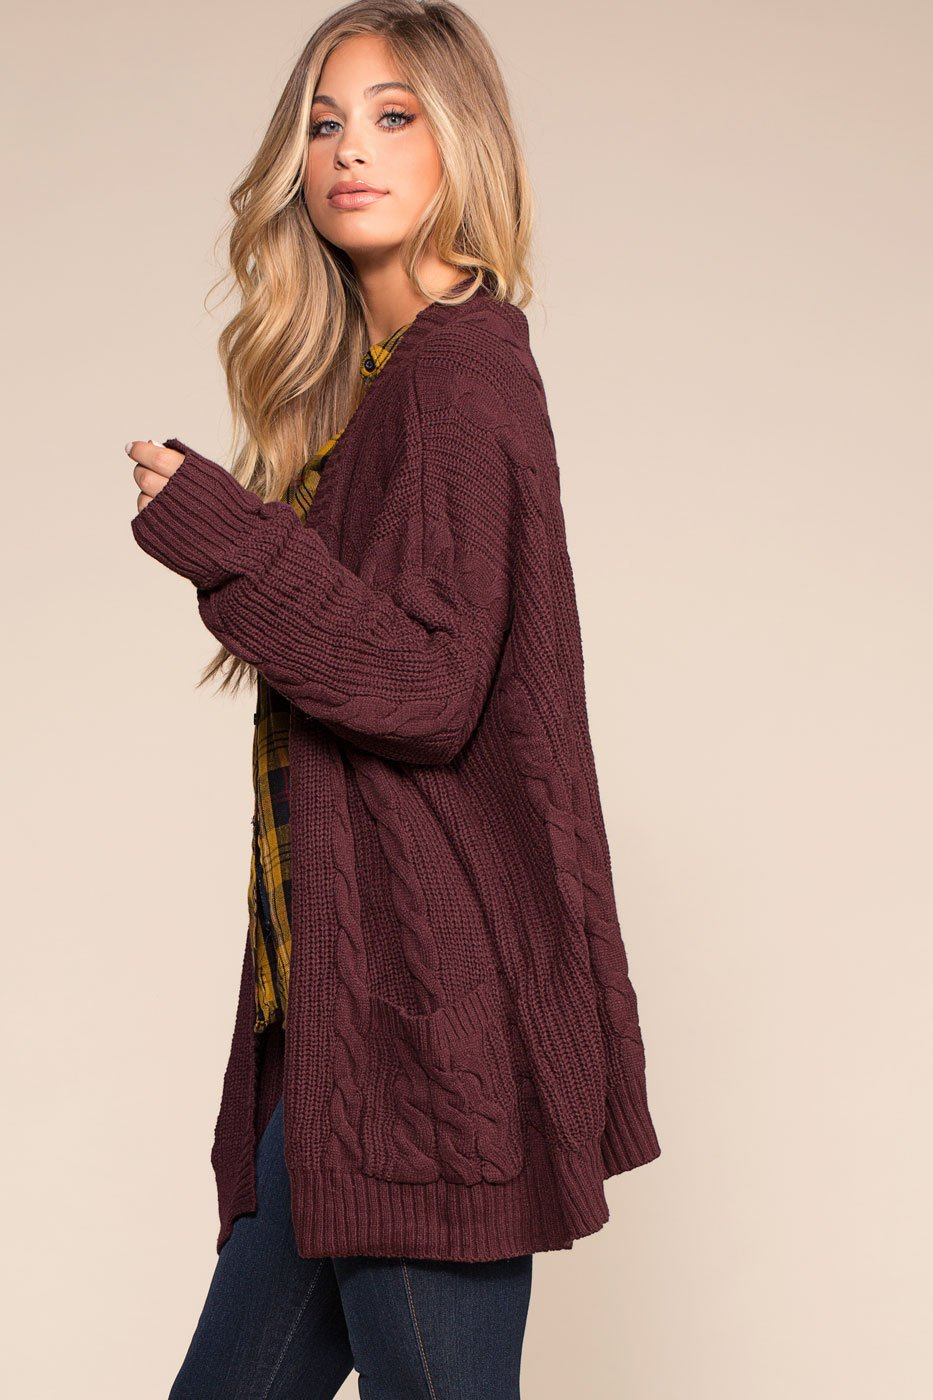 Burgundy Oversized Cardigan Sweater